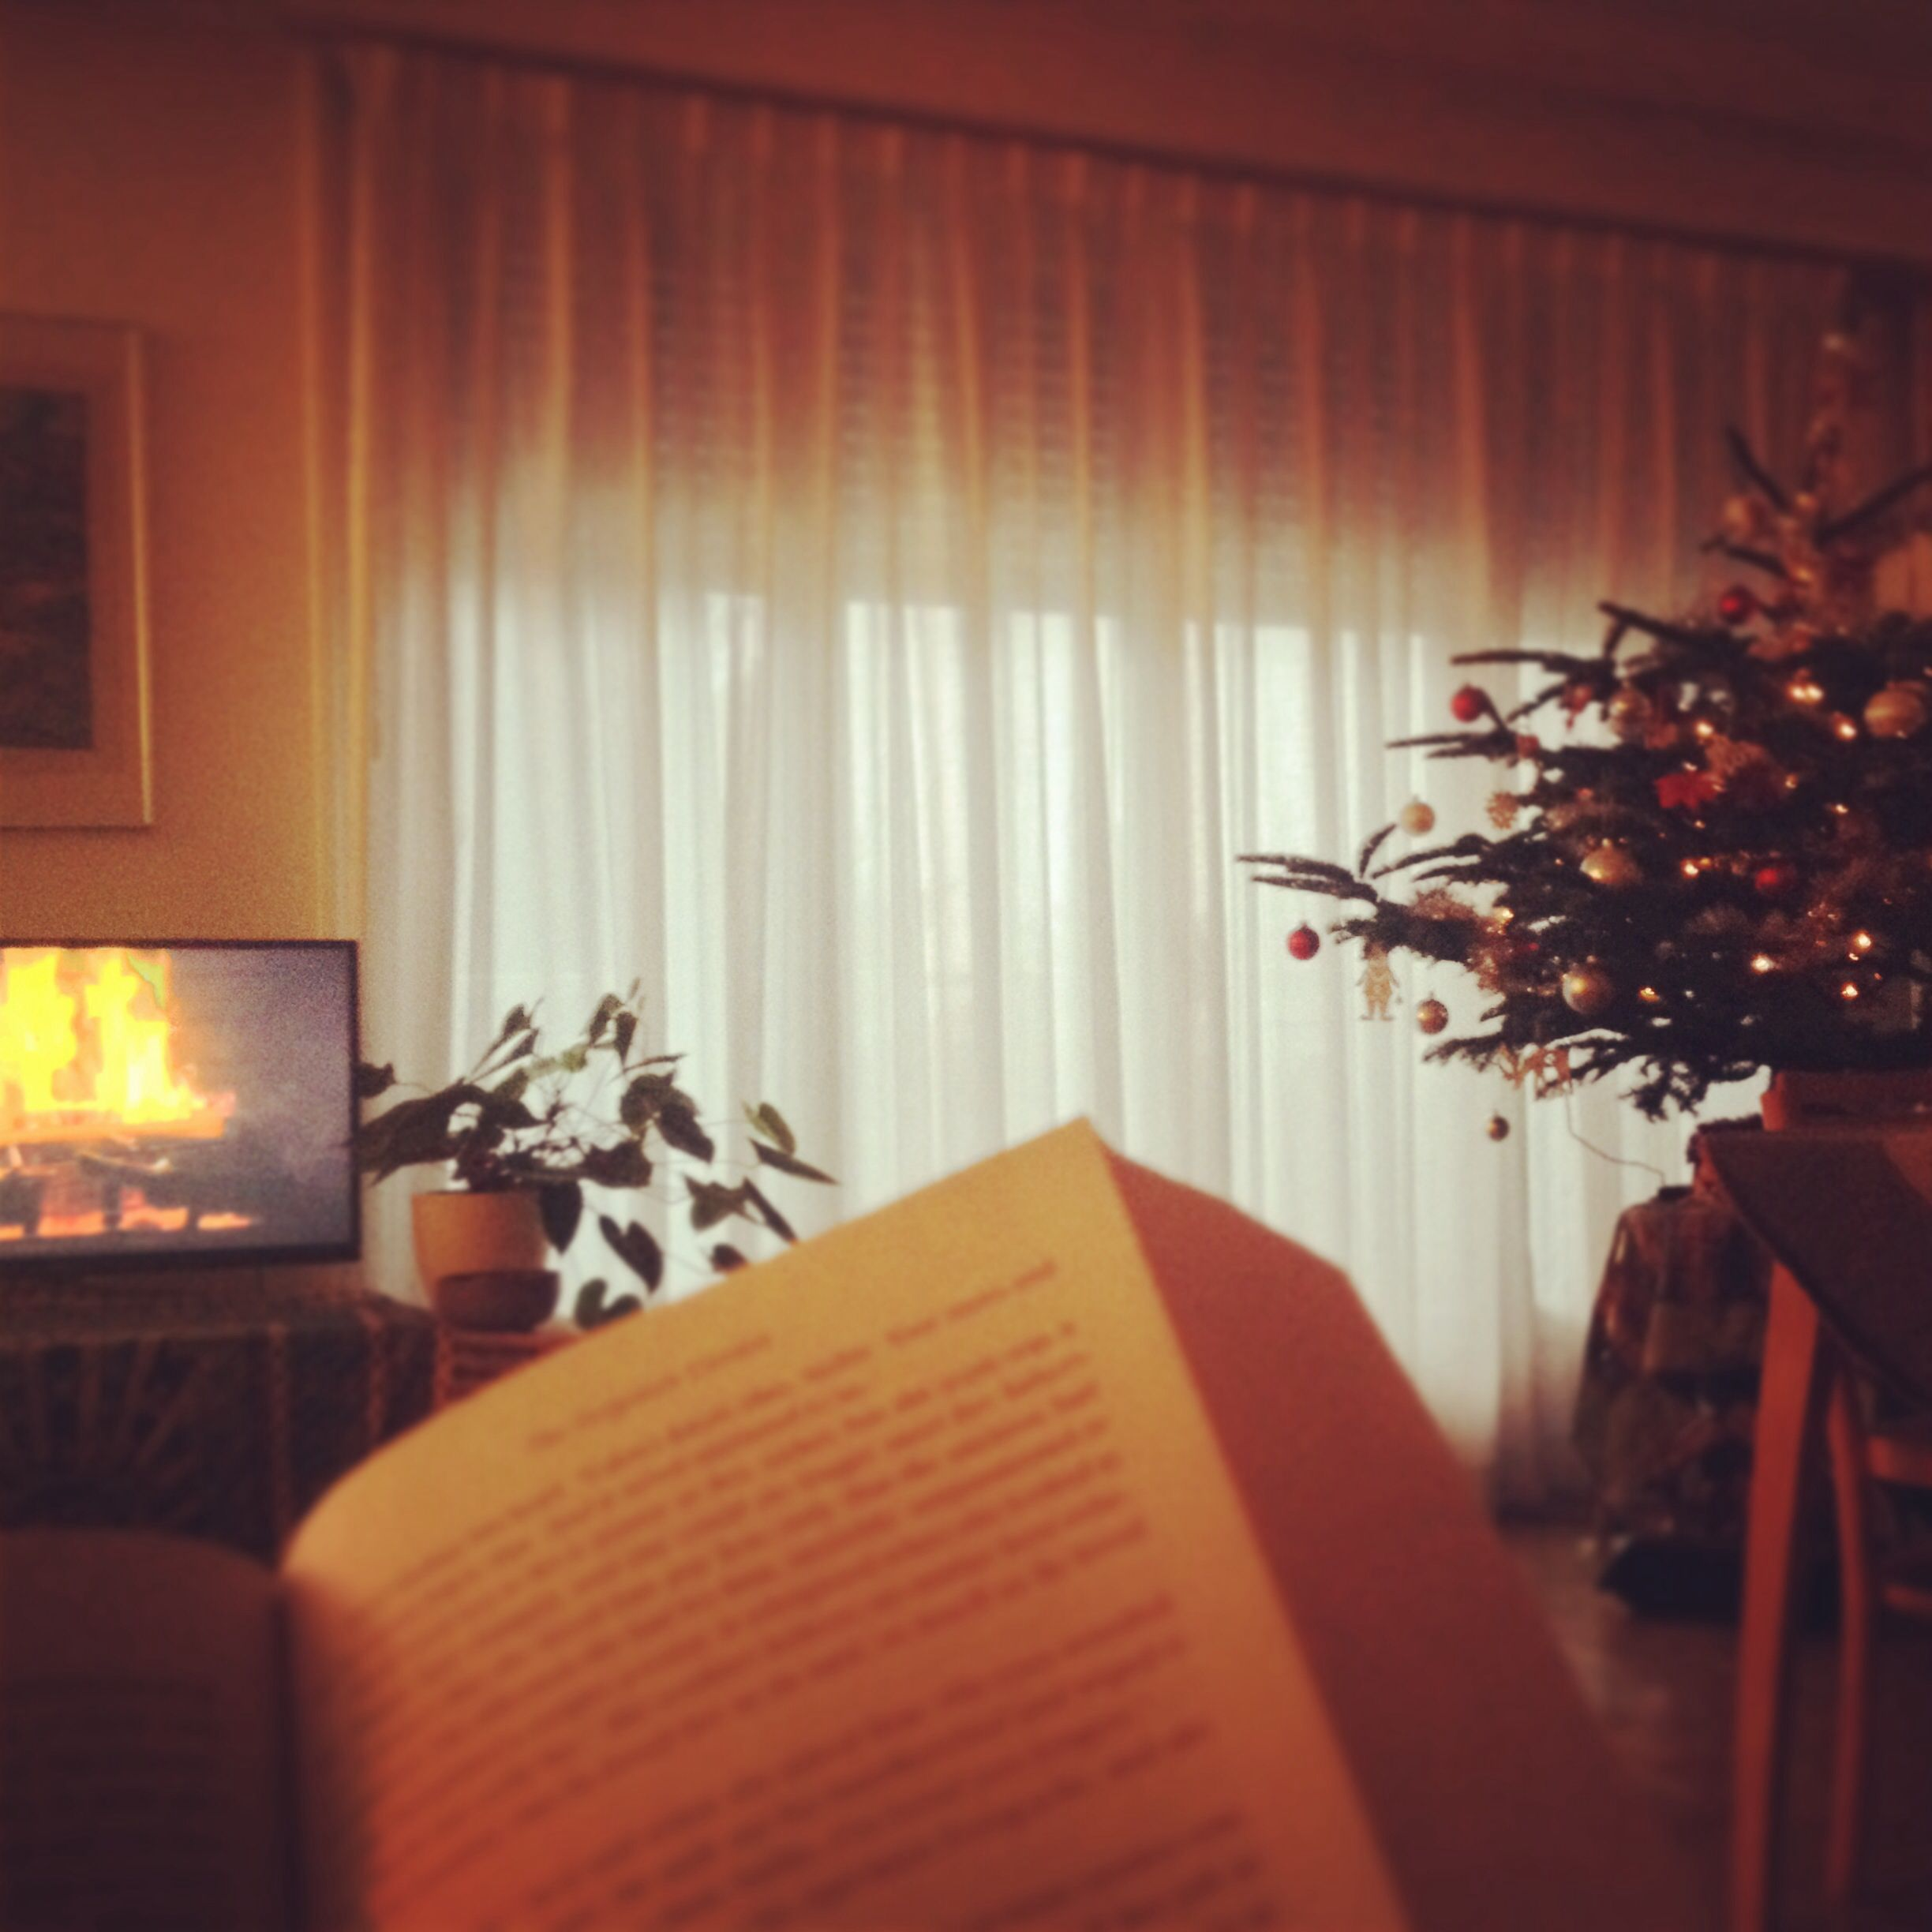 A good book, a modern fireplace and a beautiful Christmas tree. Nothing better.